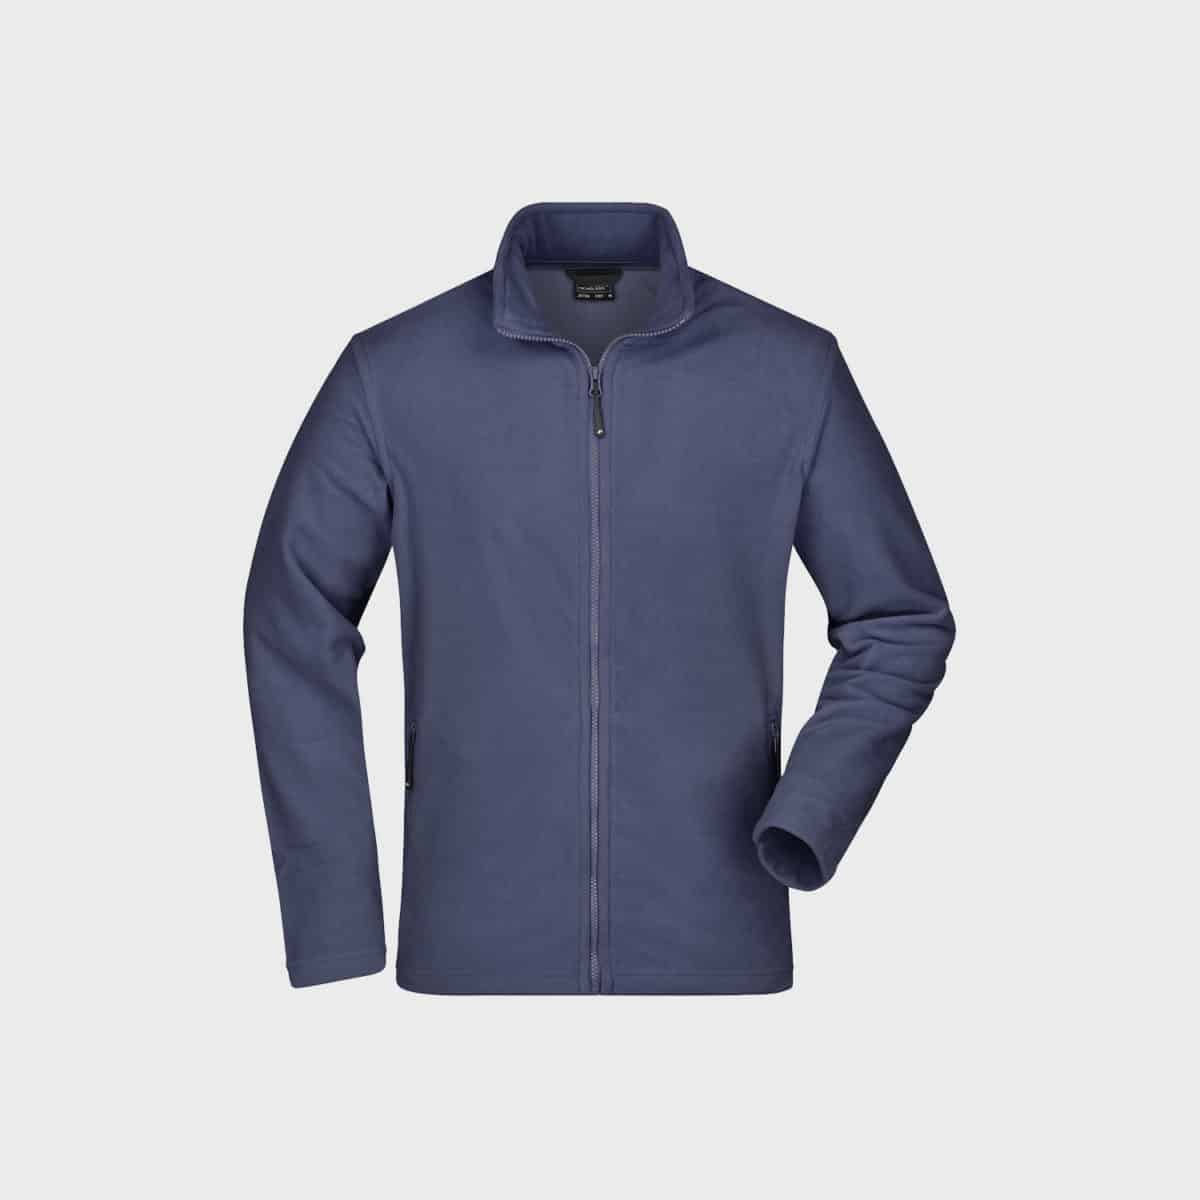 basic-fleece-jacket-herren-navy-kaufen-besticken_stickmanufaktur